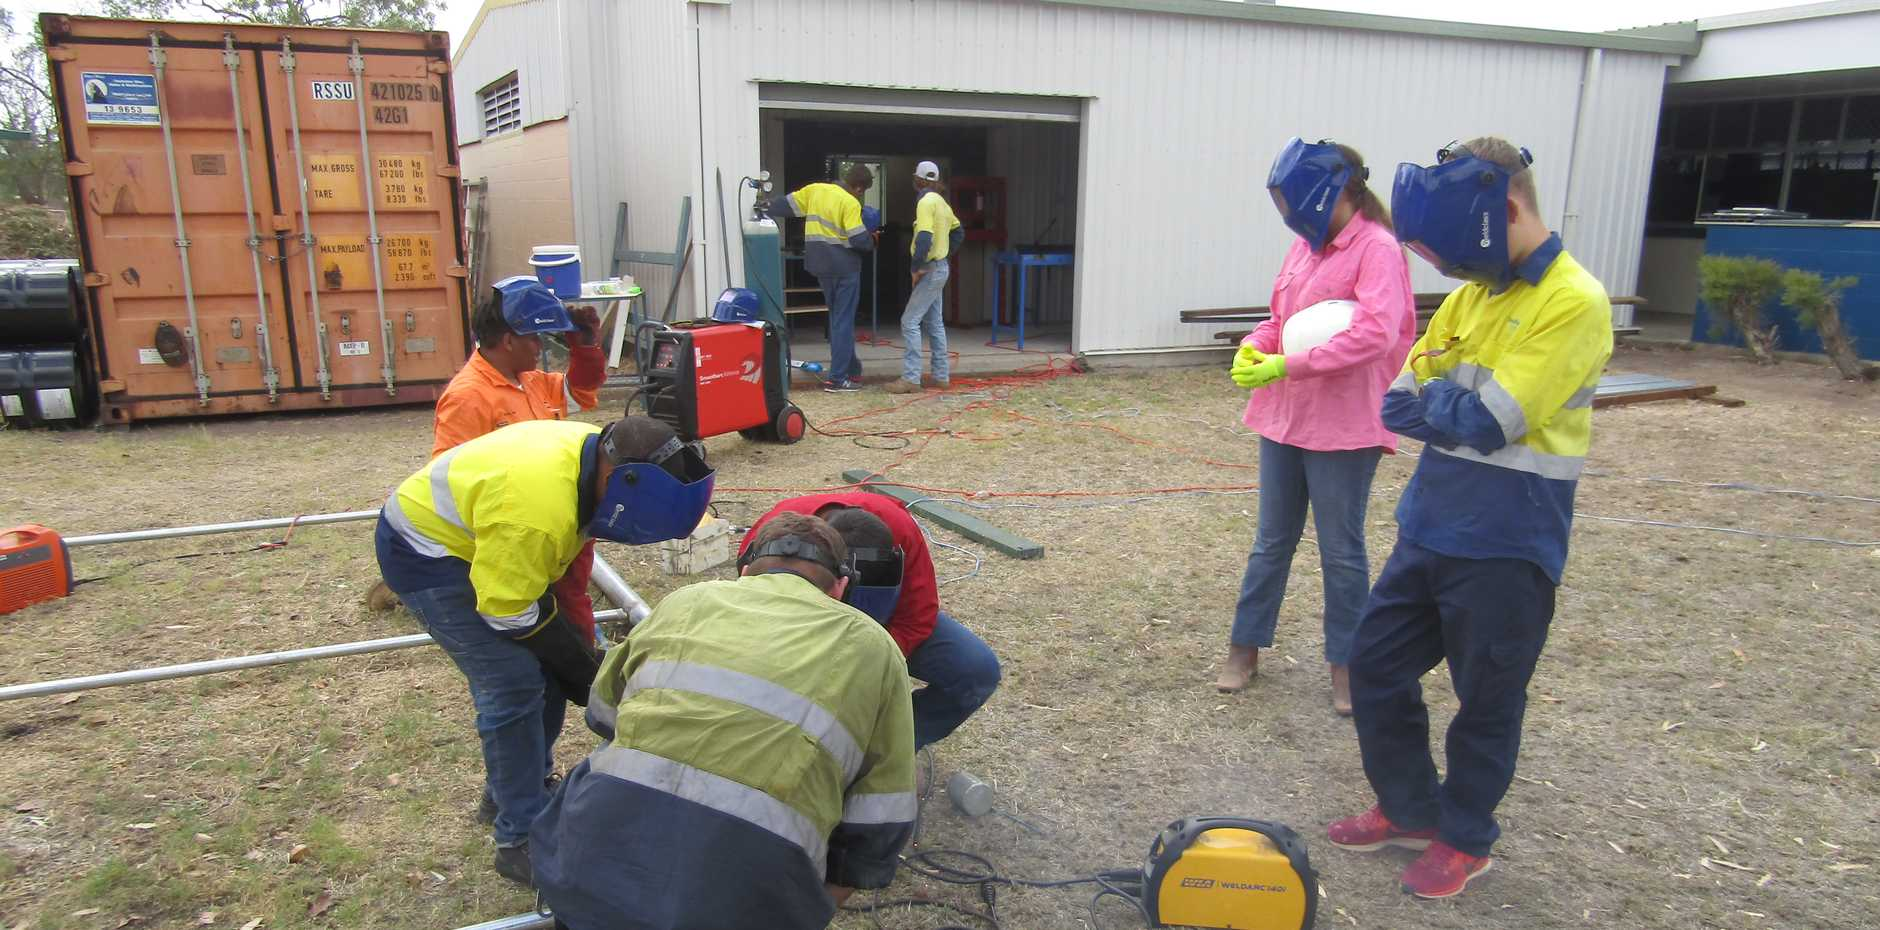 TRADIES: Students from Collinsville State High School were given the opportunity to construct and erect a discus cage with the guidance of trained tradespeople.